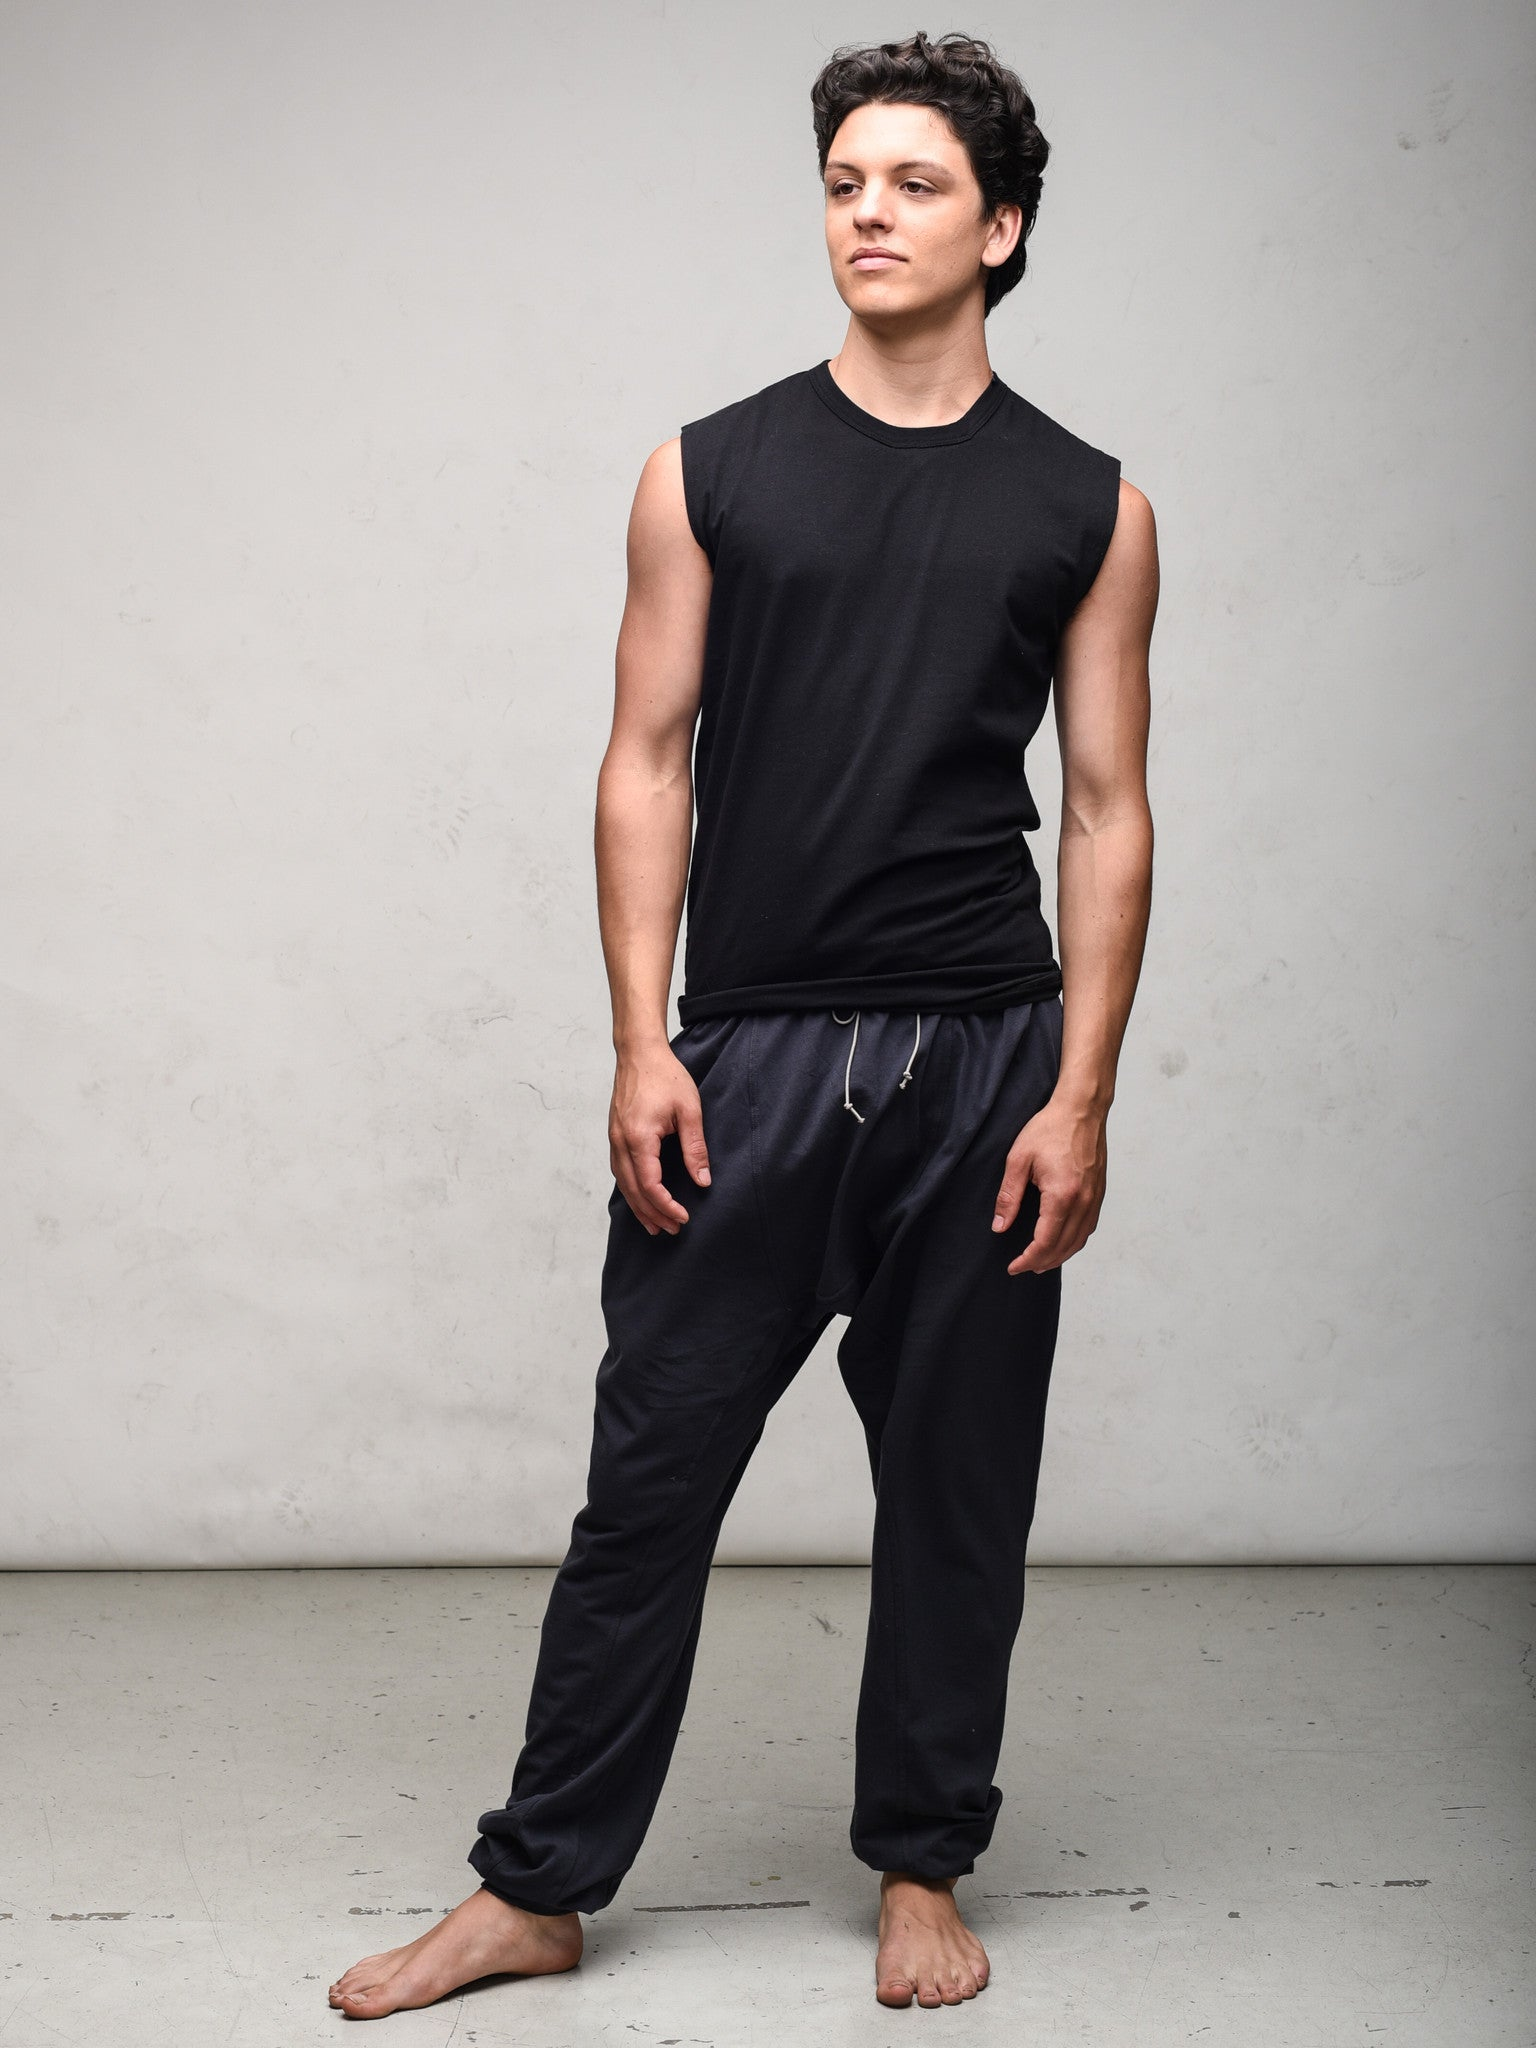 Zen Nomad mens sleeveless t shirt organic cotton and bamboo made in canada